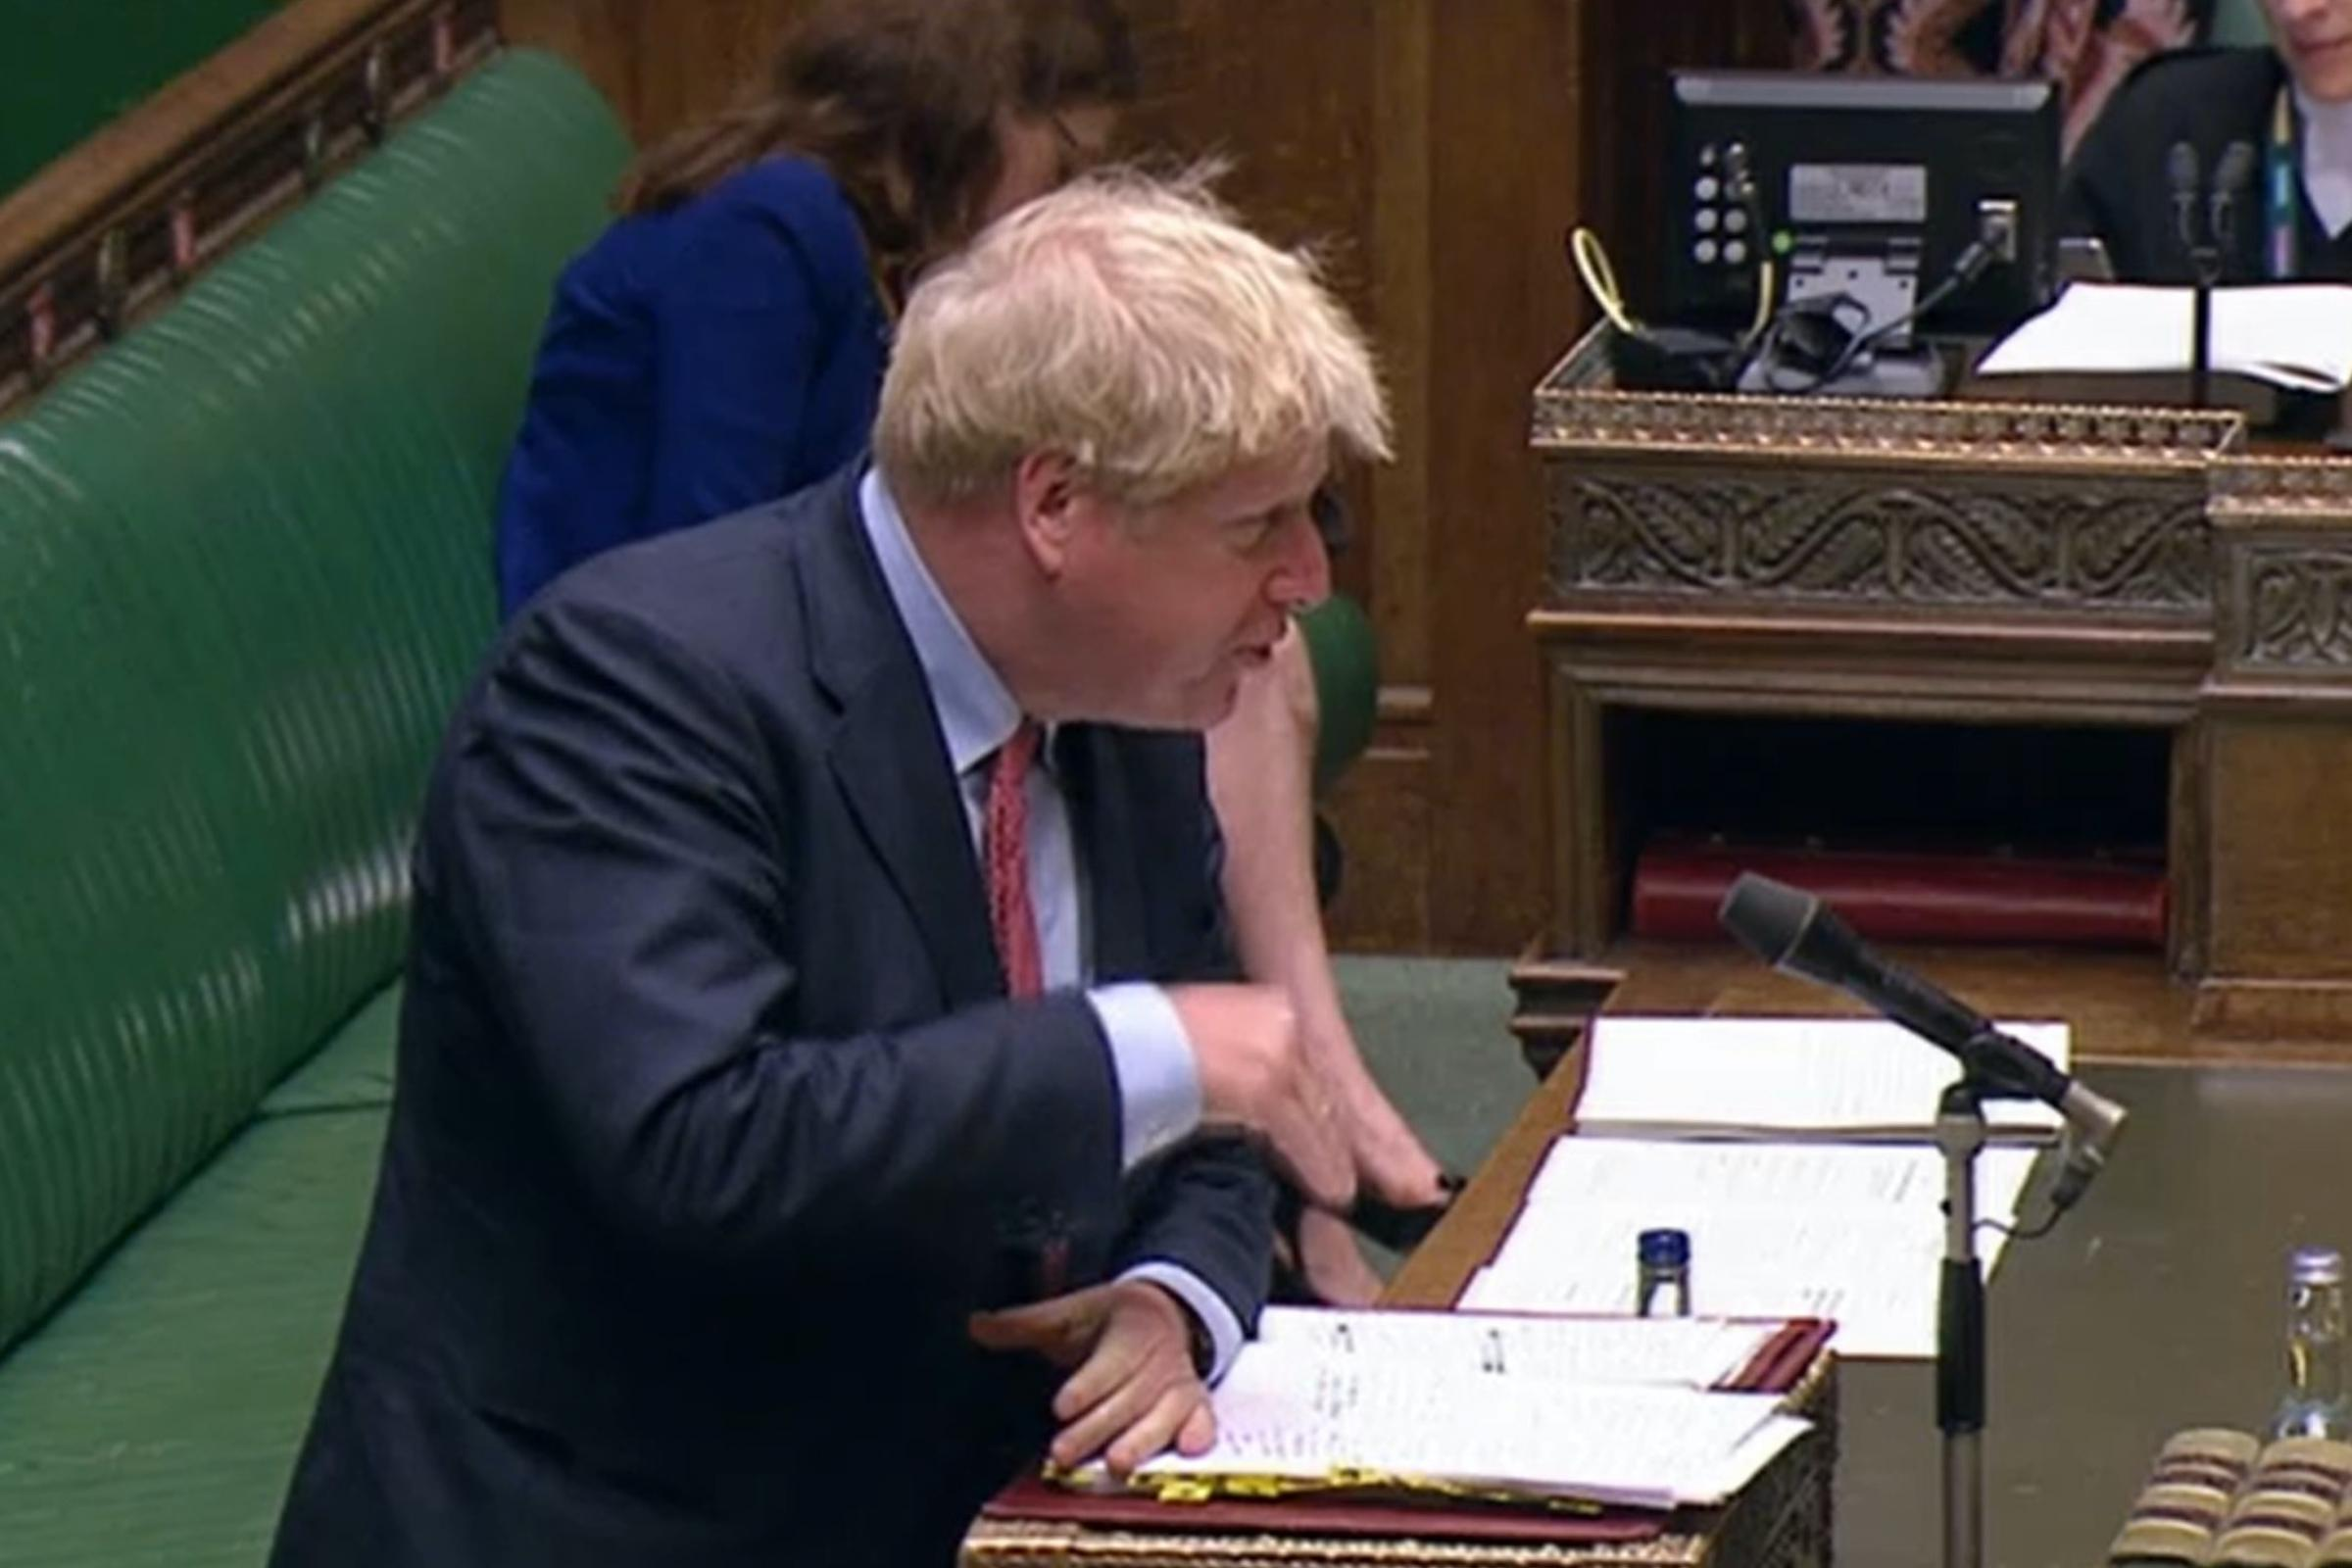 Boris Johnson delivers pants gag after coming under fire over Covid-19 response